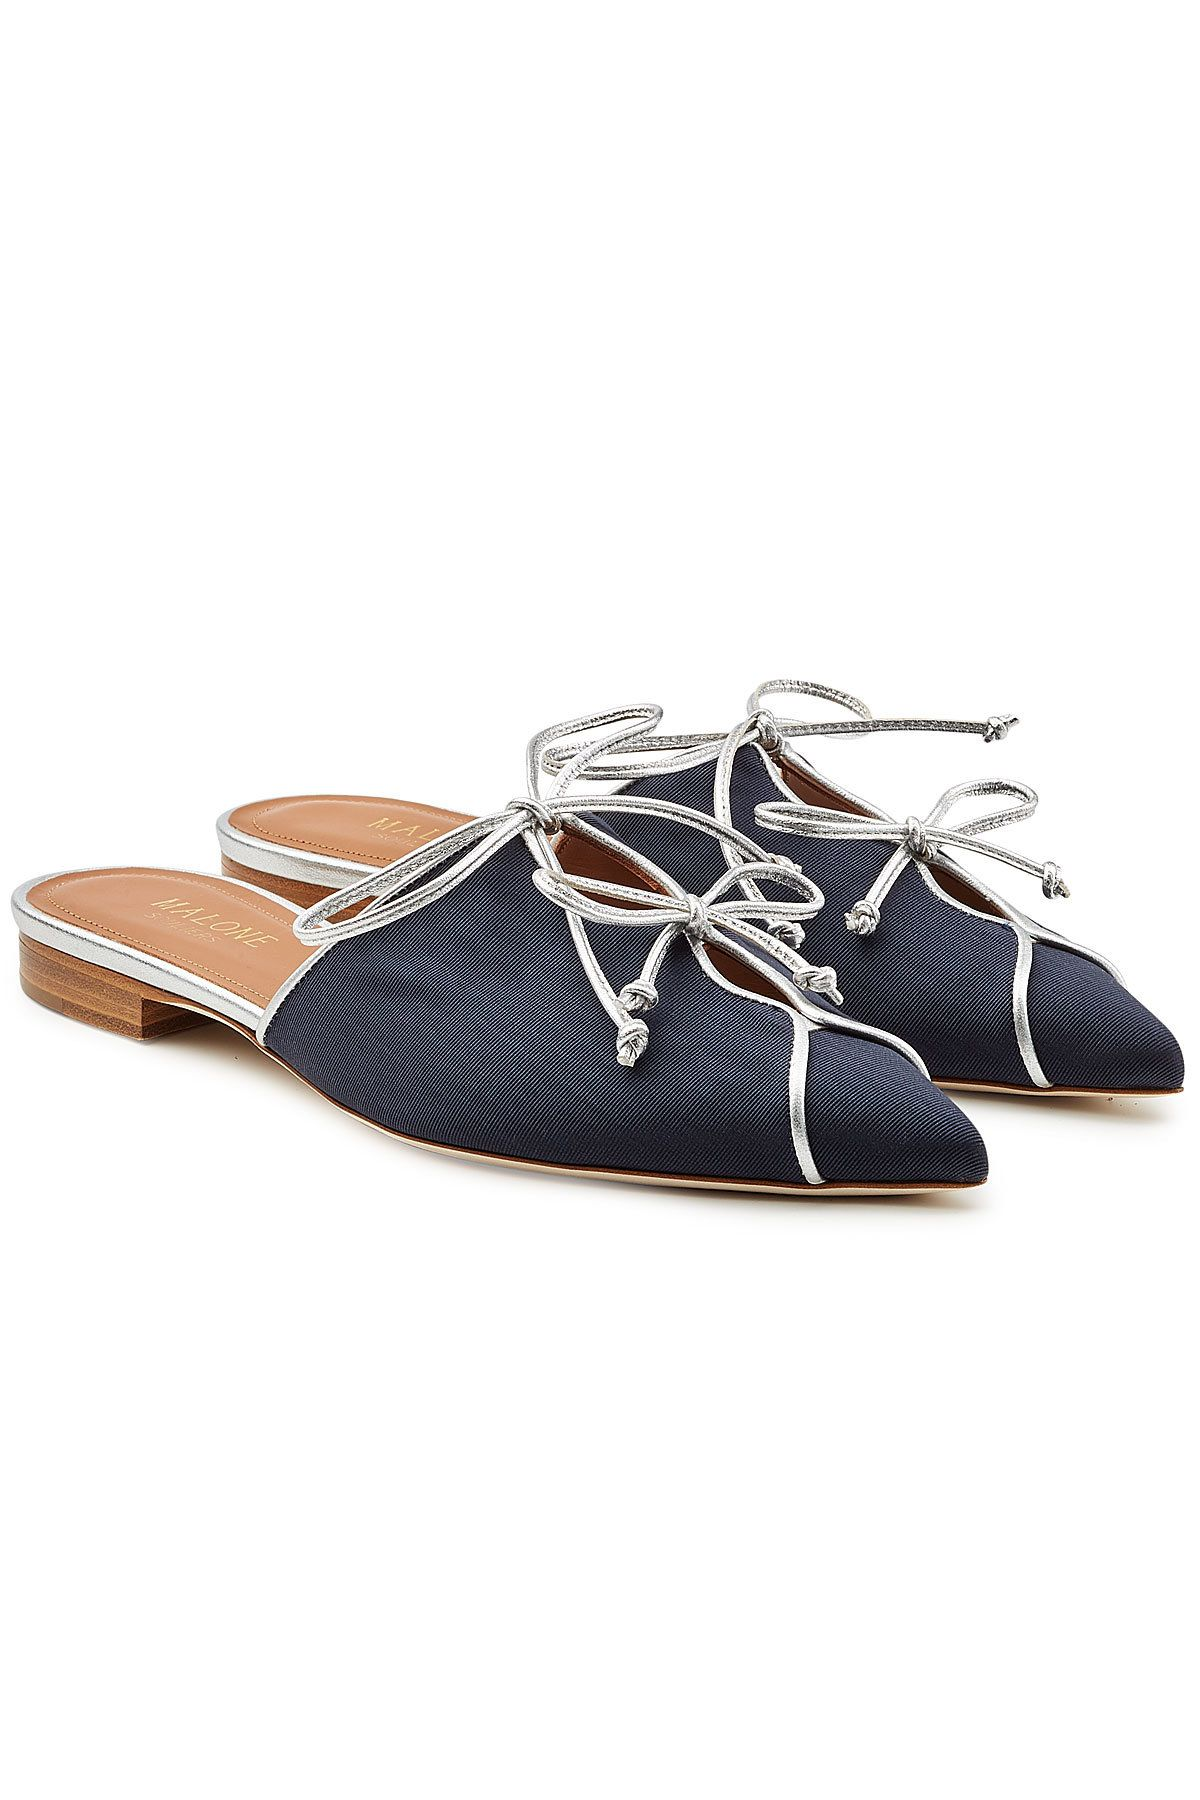 MALONE SOULIERS Vilvin Mules with Leather Big Discount For Sale aqPv6EIaBU